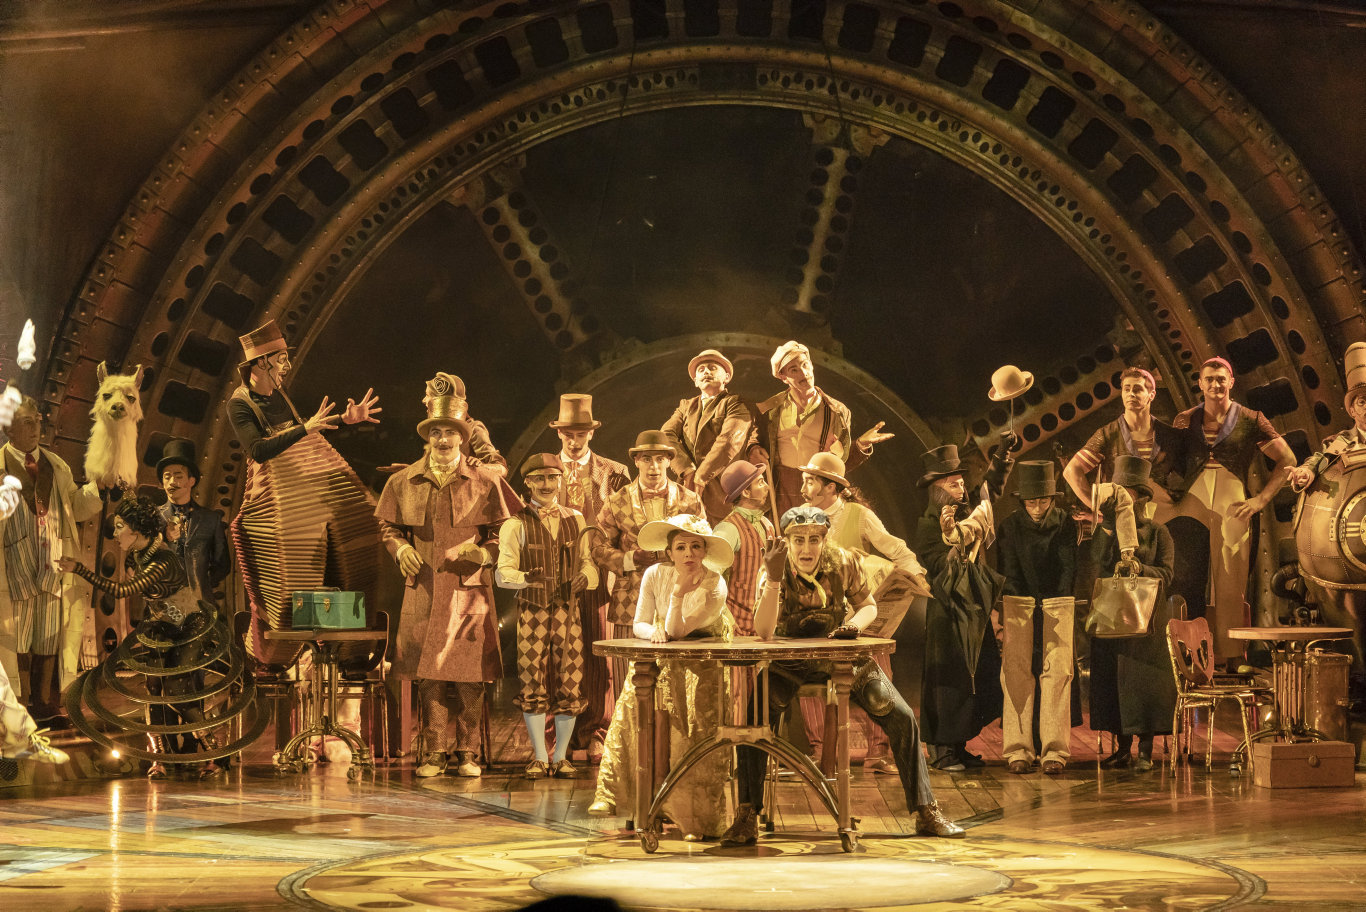 A scene from the Cirque du Soleil show Kurios - Cabinet of Curiosities.